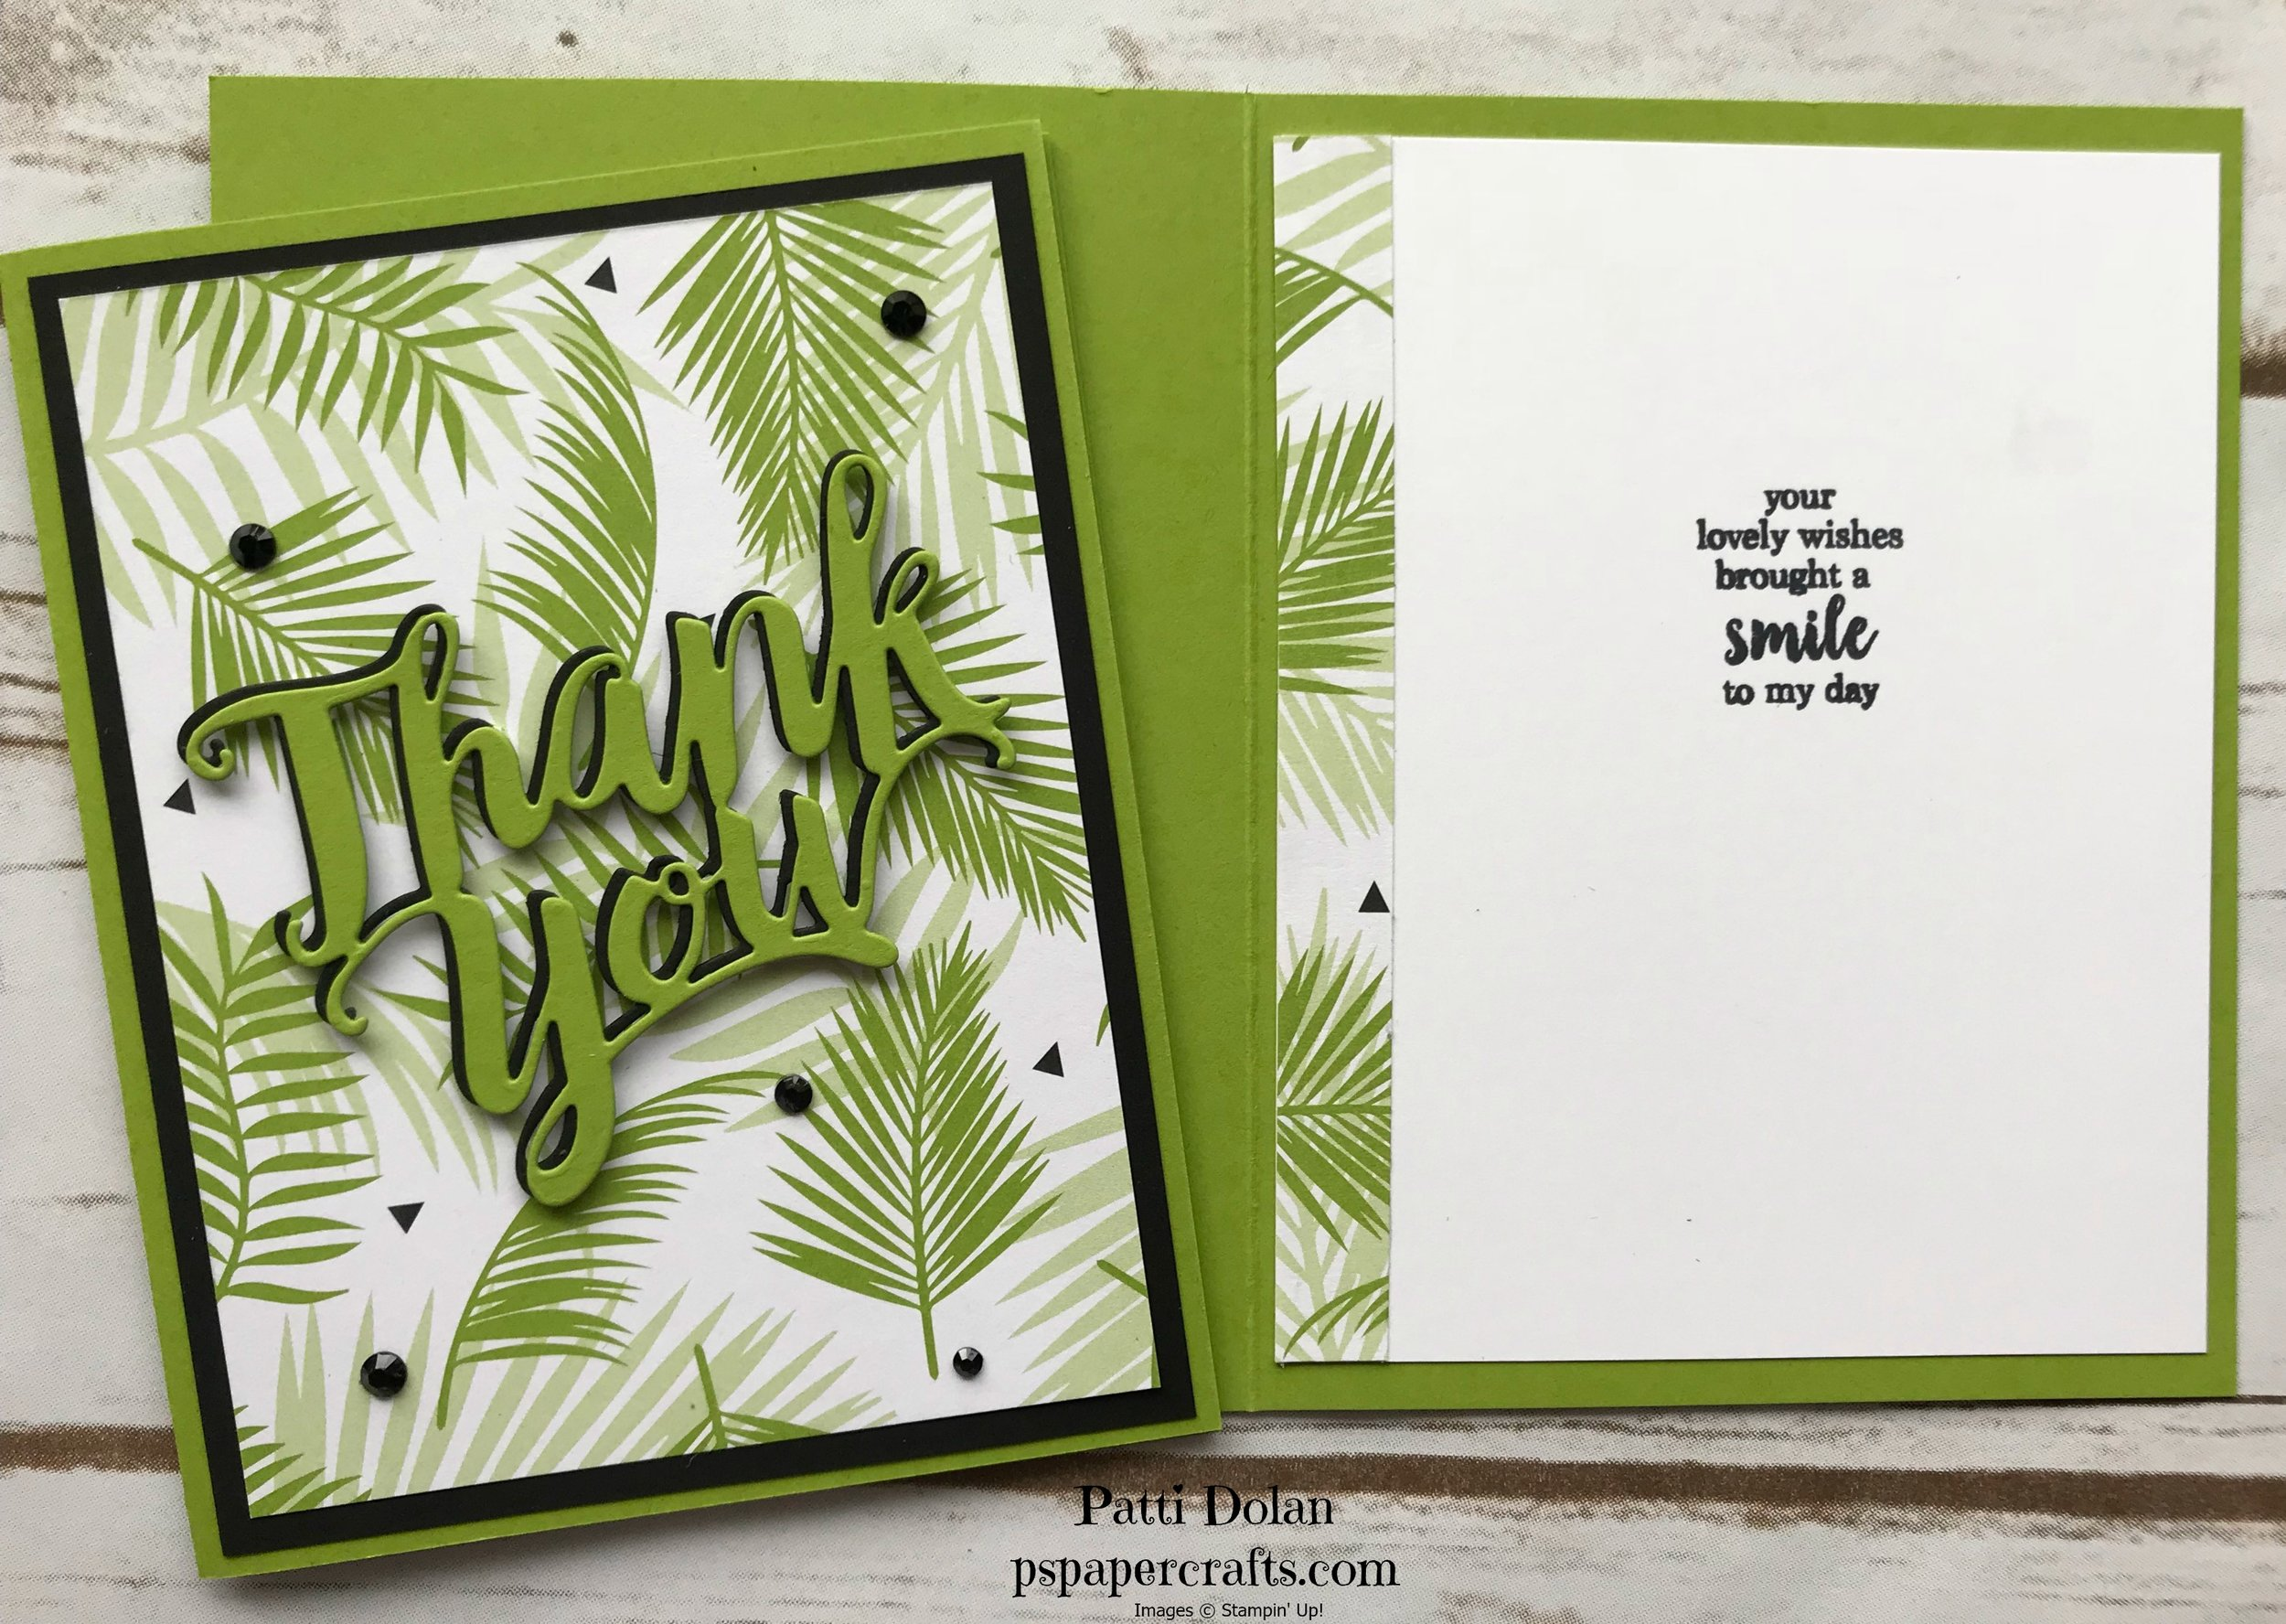 Thank You Card Inside2.jpg